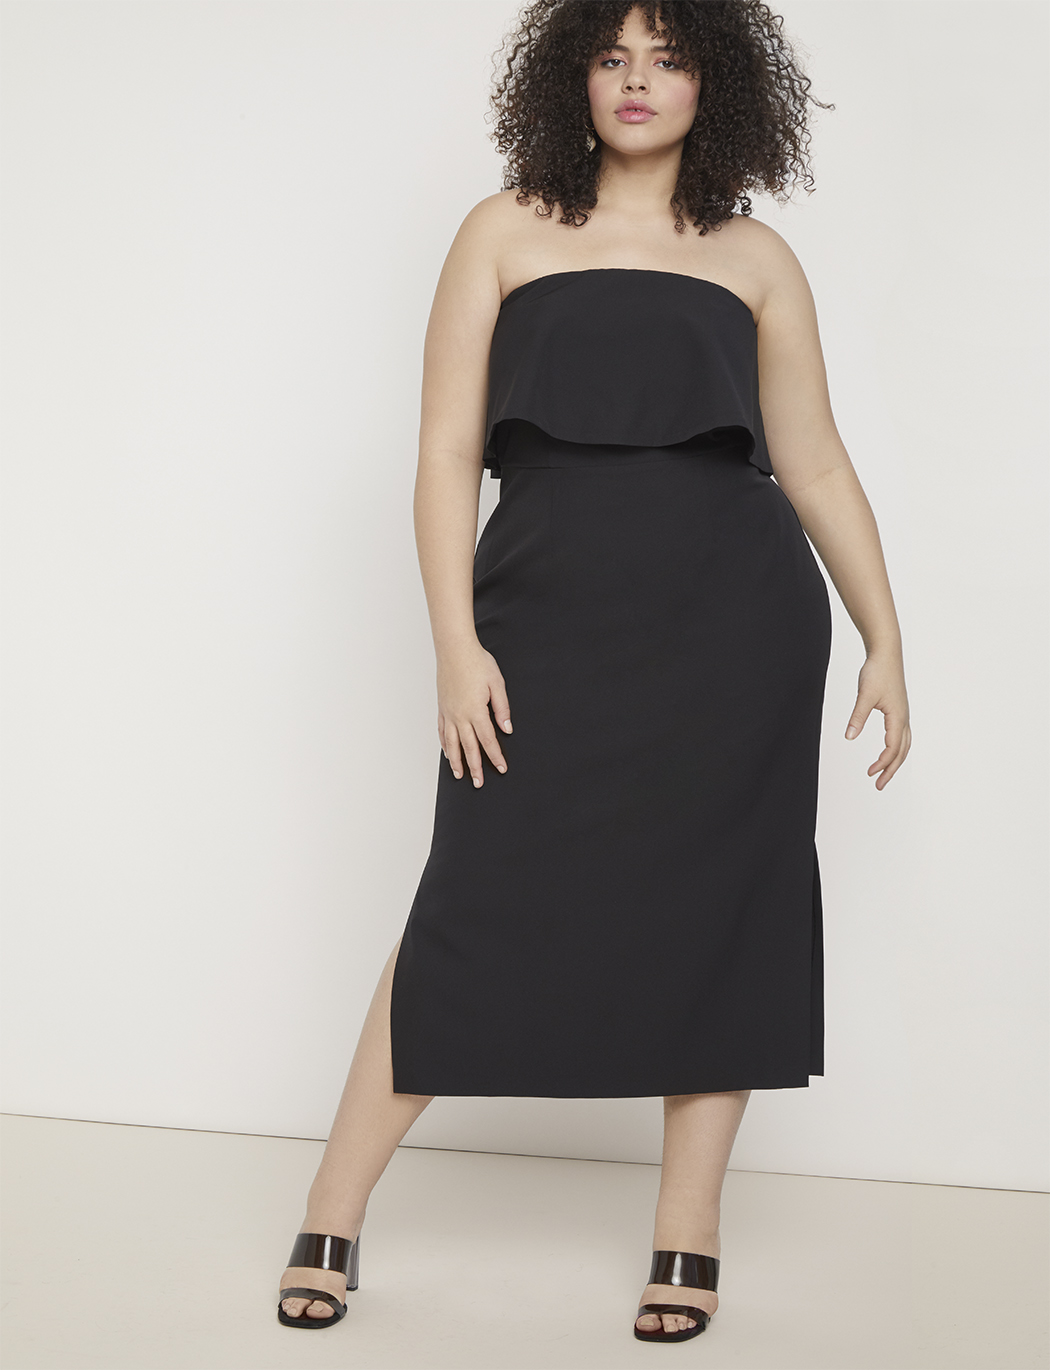 Strapless Dress with Bodice Overlay | Women\'s Plus Size Dresses | ELOQUII